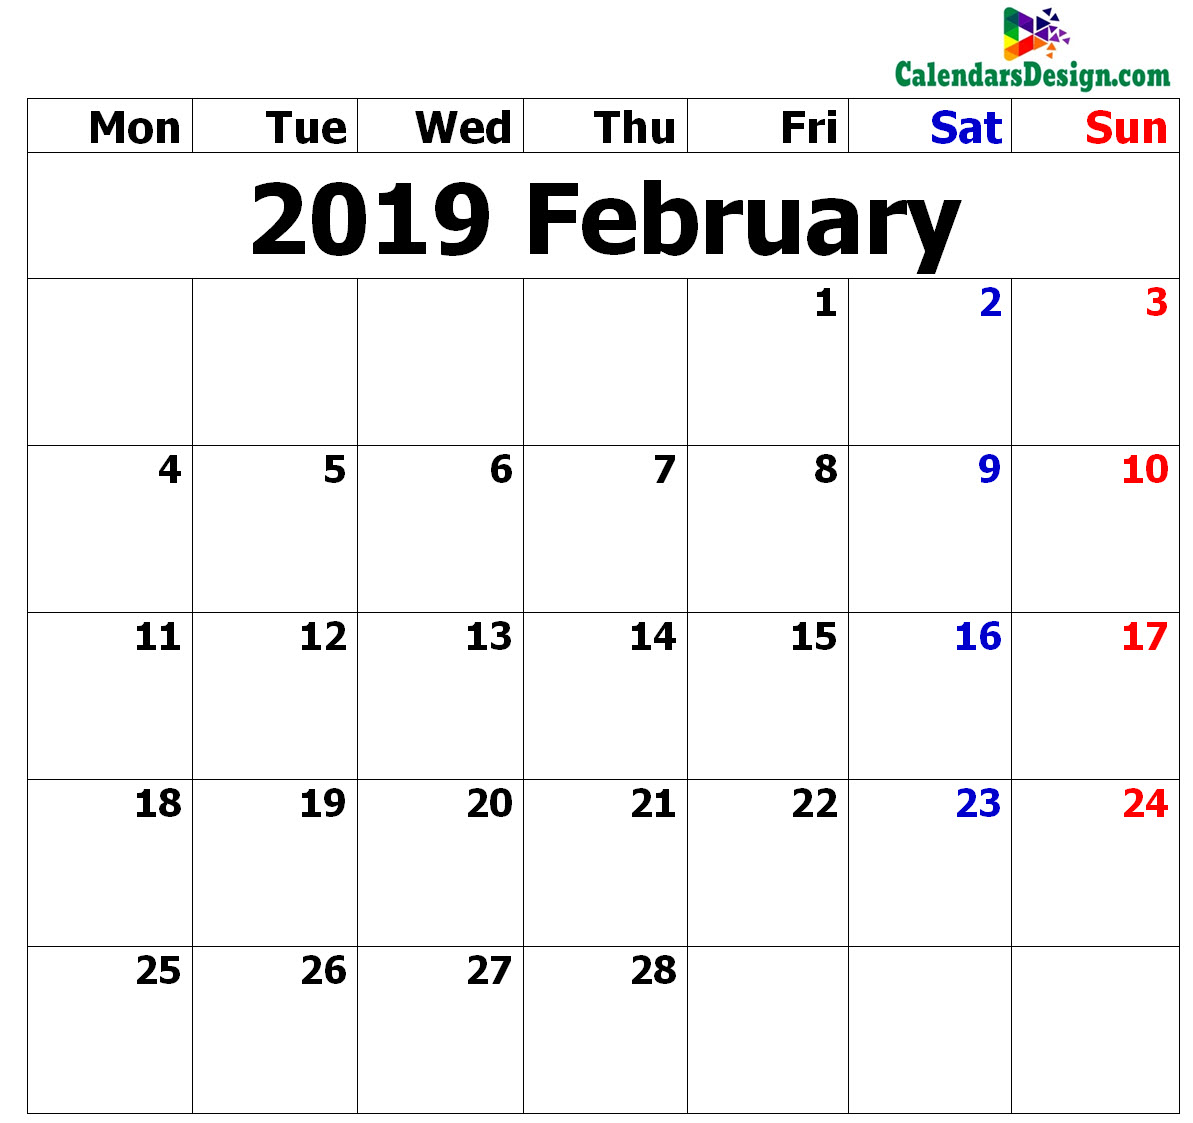 February Calendar 2019 in Excel Format